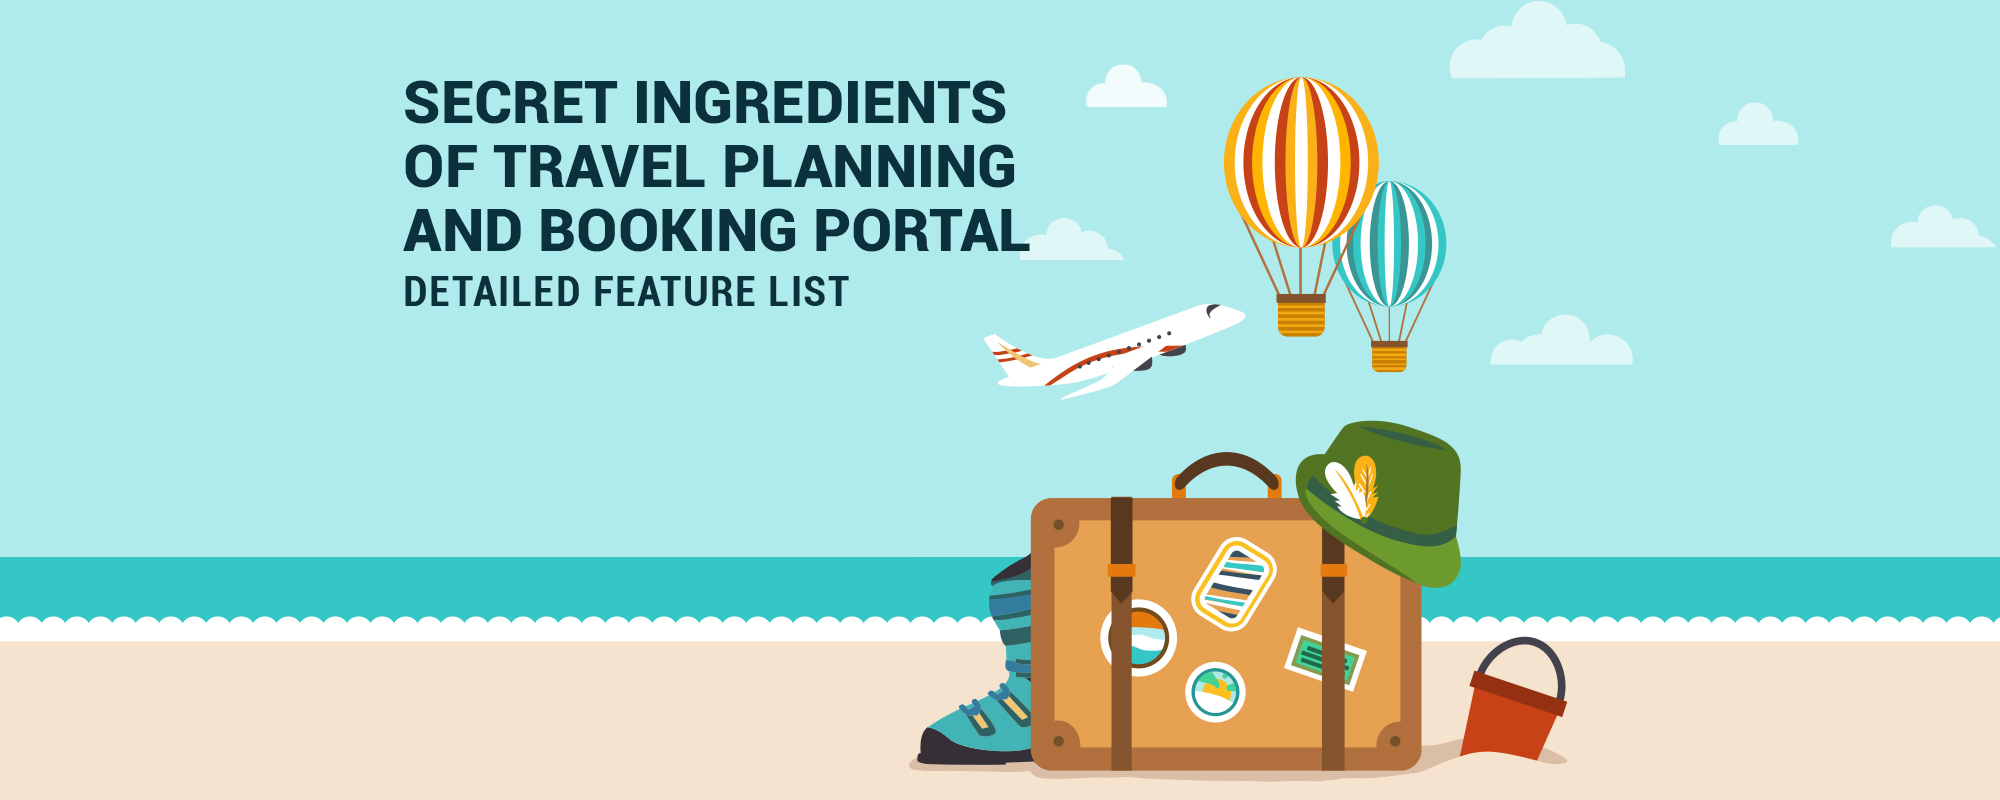 Business Analysis & Features to Build Travel Experience Portal